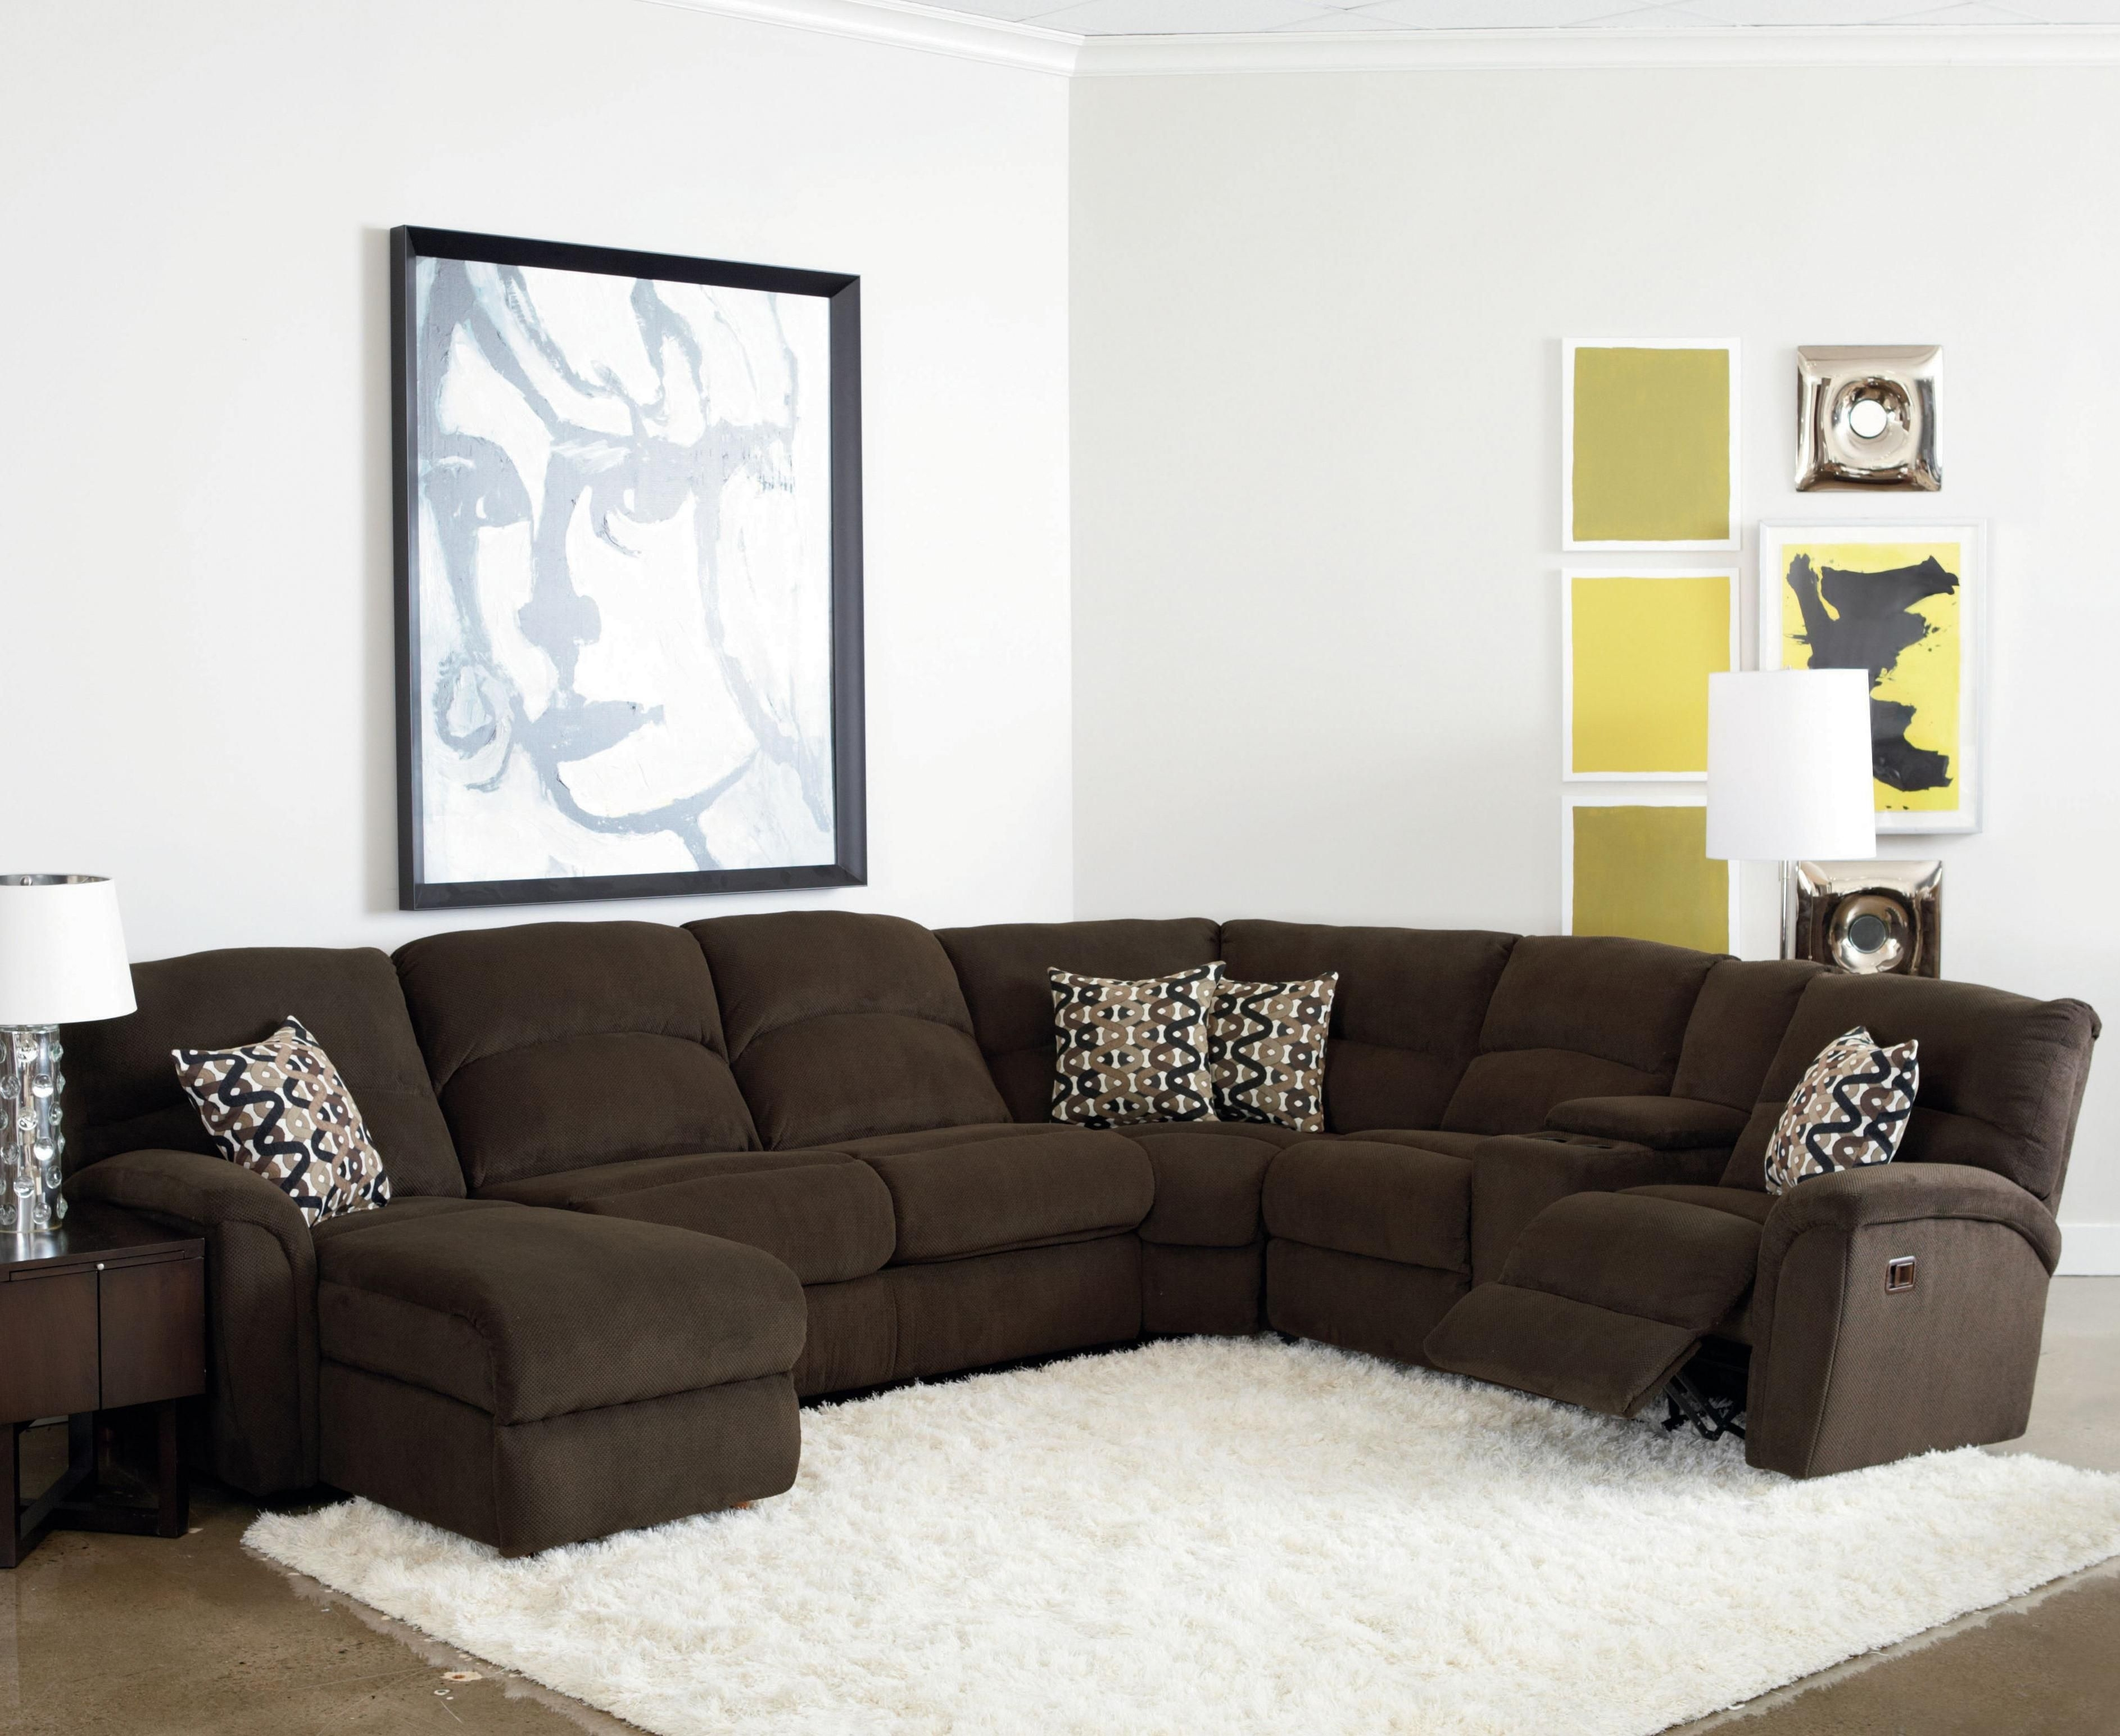 Lane Grand Torino Casual Four Piece Power Sectional Sofa W/ Full With Regard To Grand Furniture Sectional Sofas (View 3 of 10)